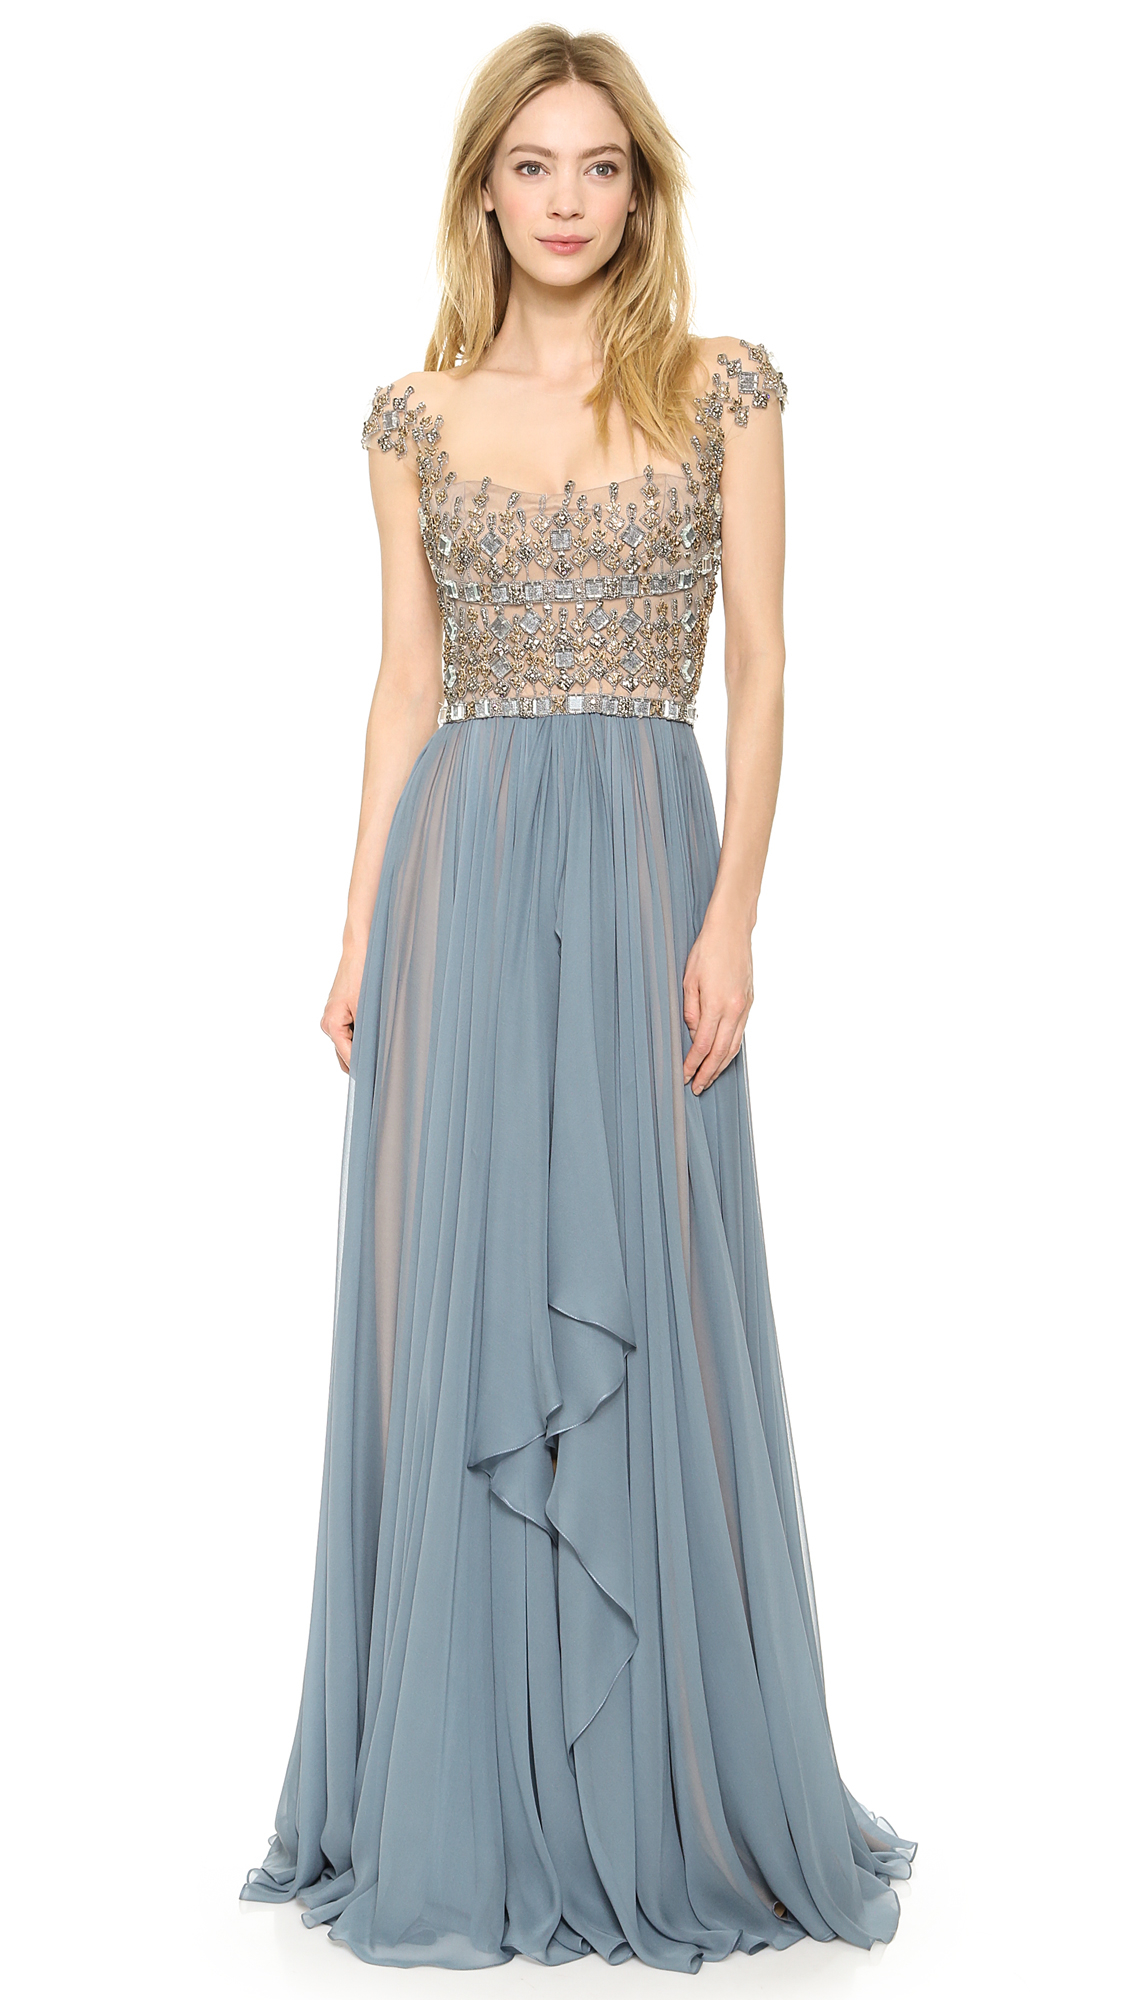 Lyst - Reem Acra Embroidered Illusion Drop Shoulder Gown Blue Smoke ...